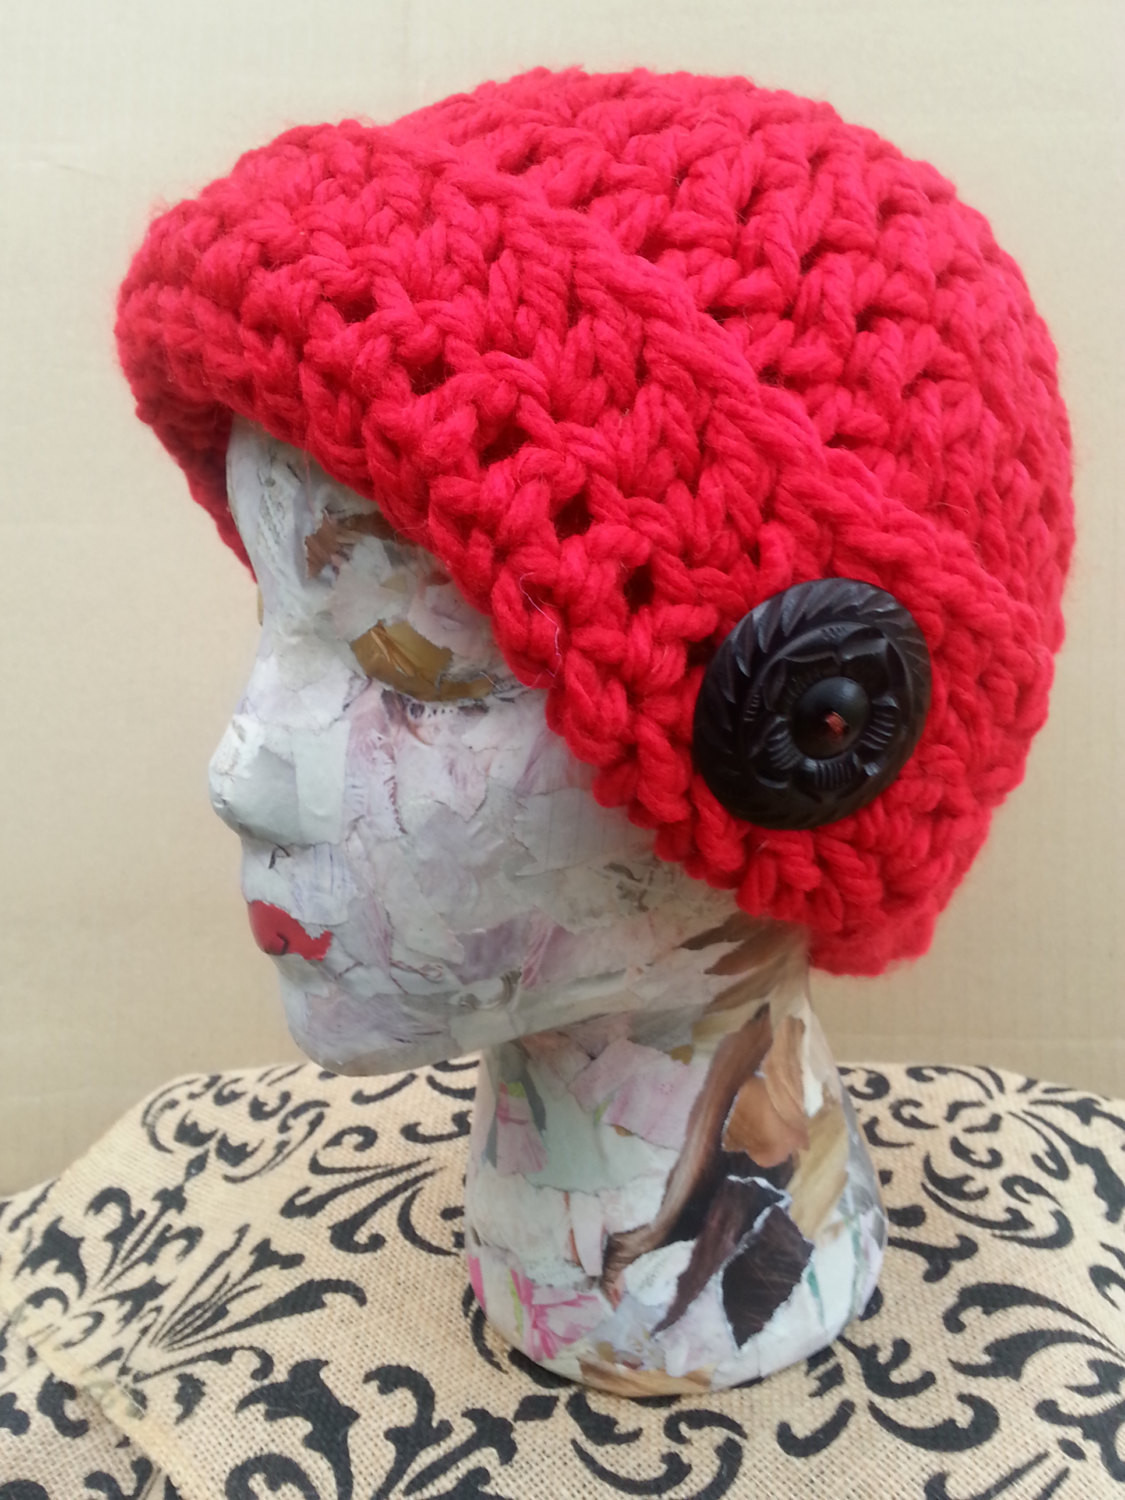 SALE Red Crochet Skull Cap Funky Winter Cap Women s Teen